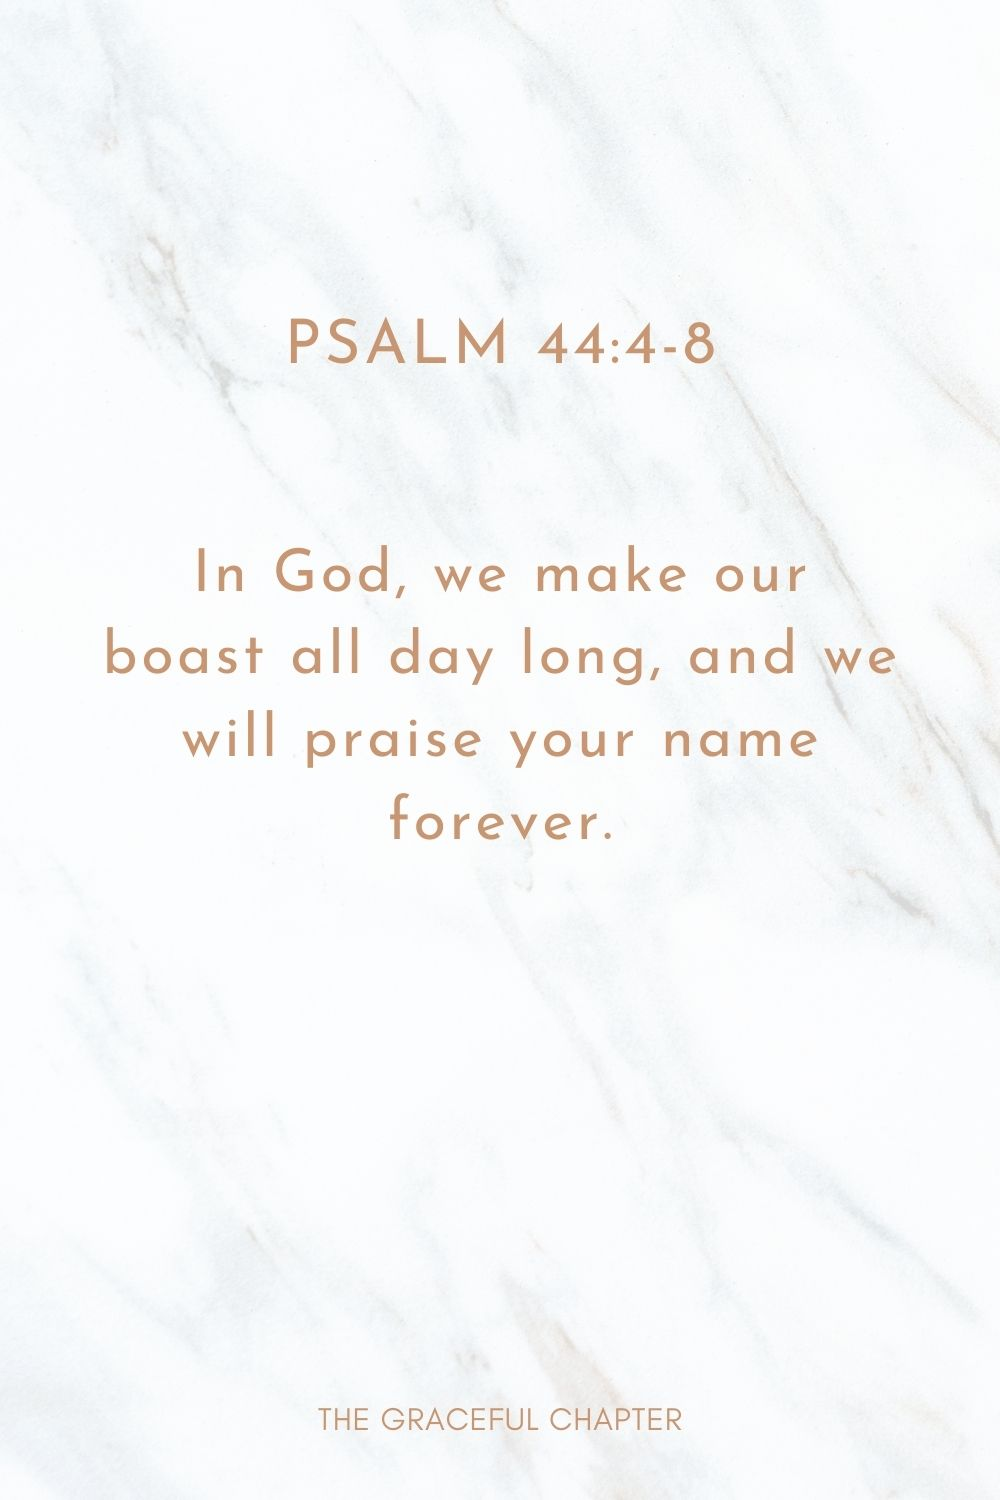 In God, we make our boast all day long, and we will praise your name forever. Psalm 44:4-8